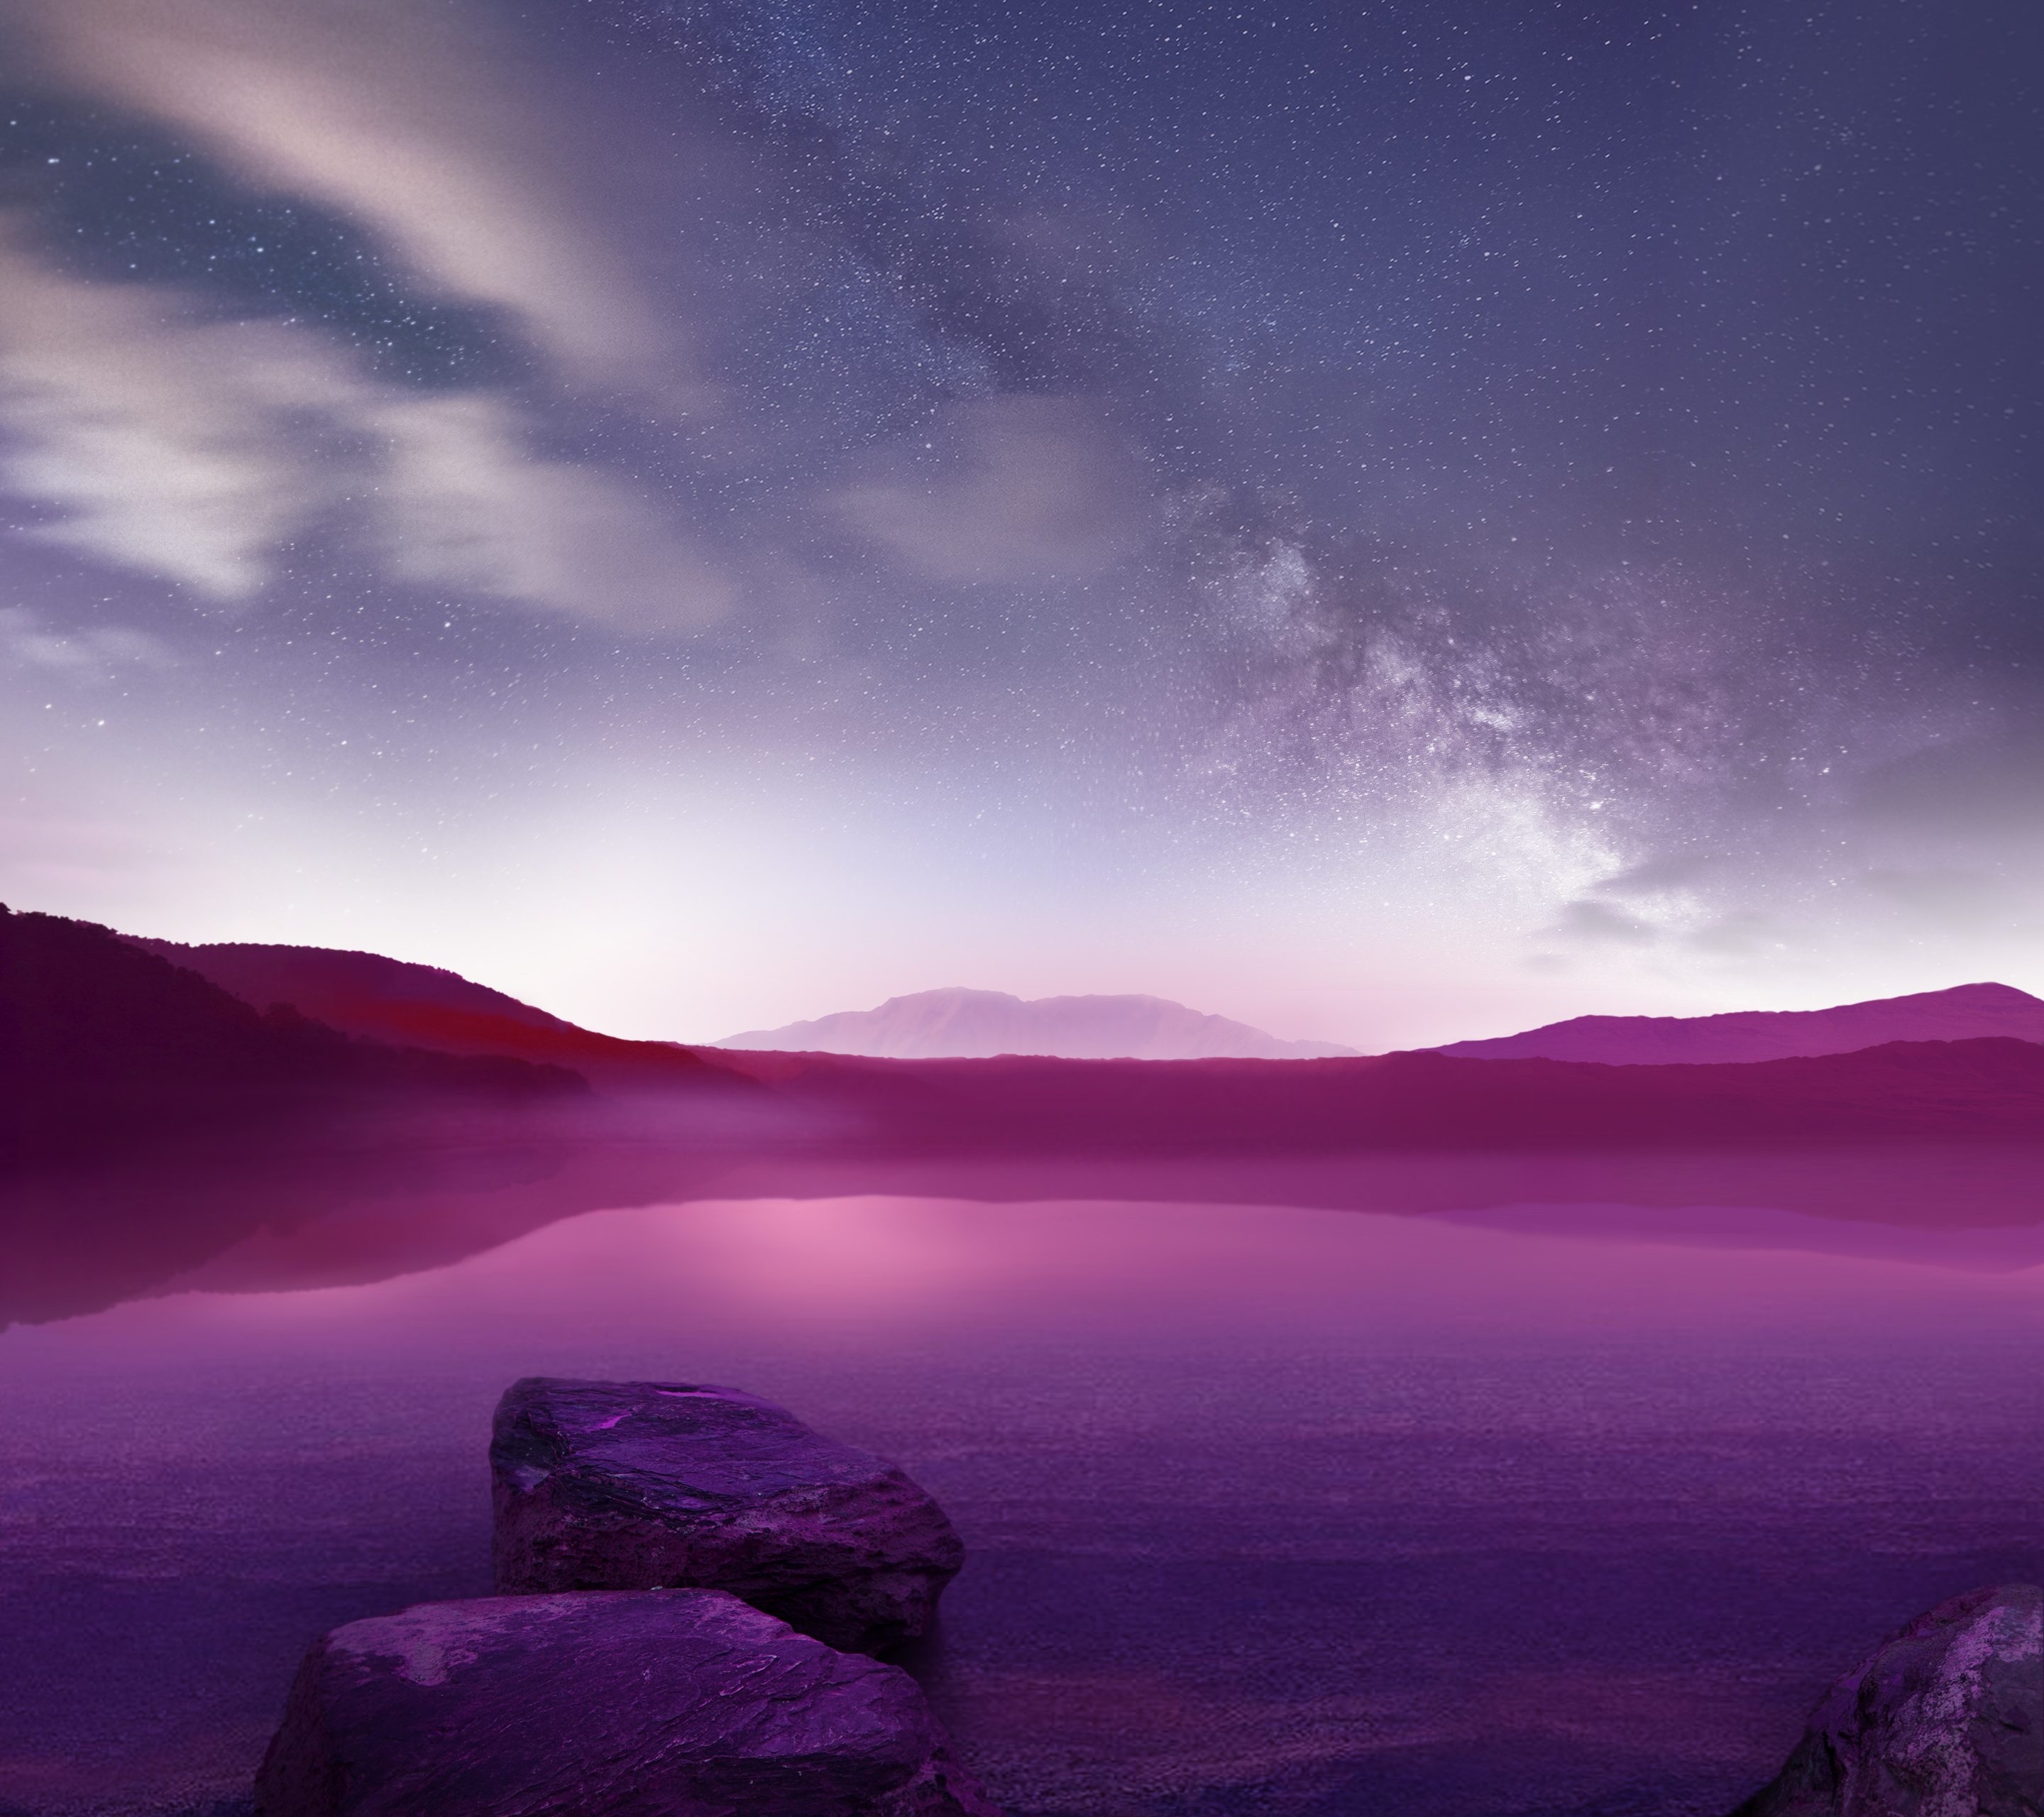 download: lg g3 wallpapers for your phone